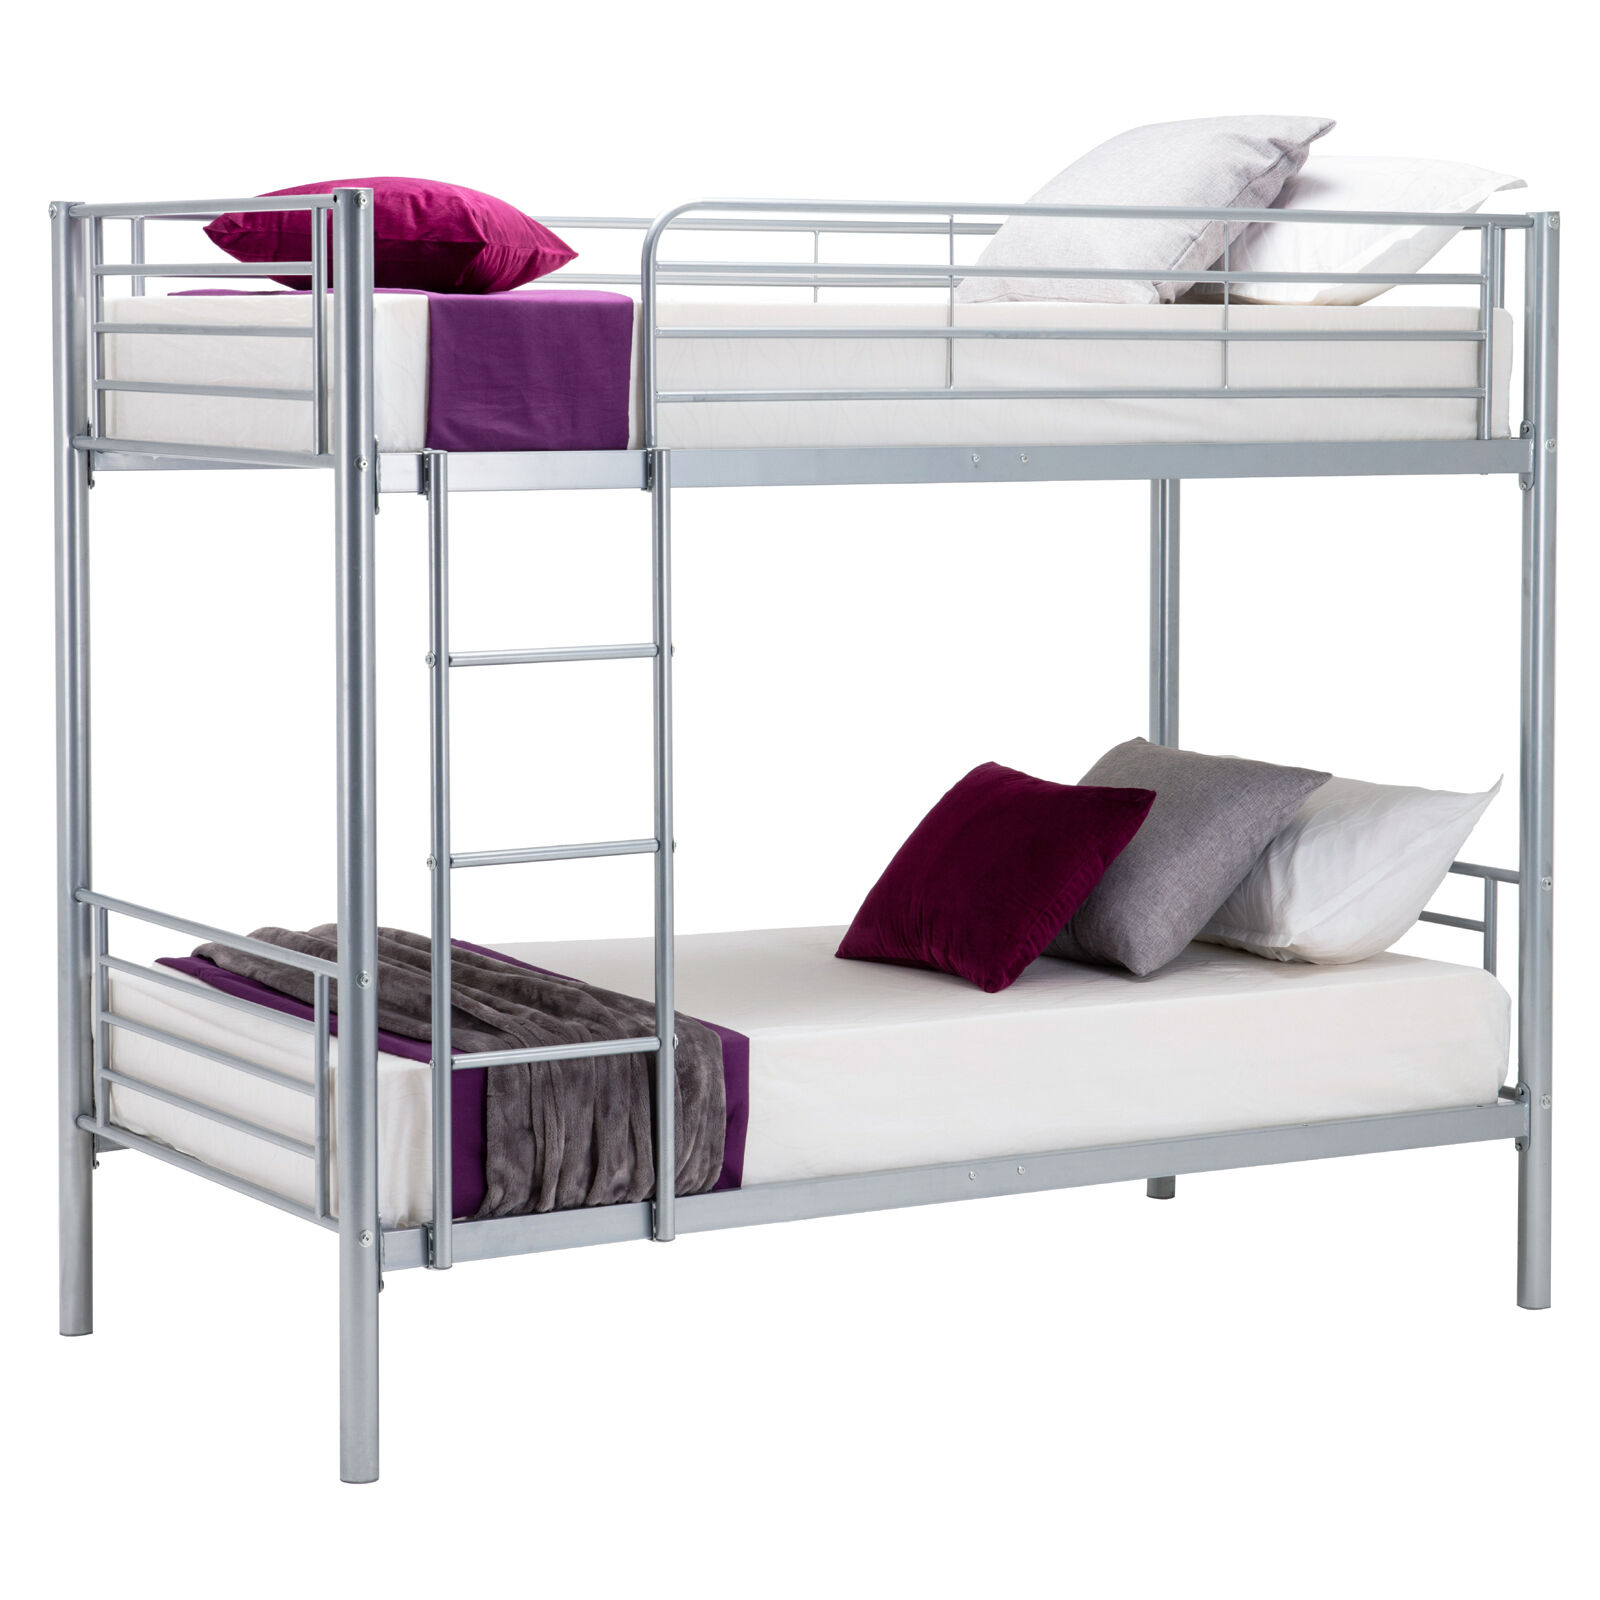 Modern 2x3ft single silver metal bunk bed frame 2 person for Bunk bed frame